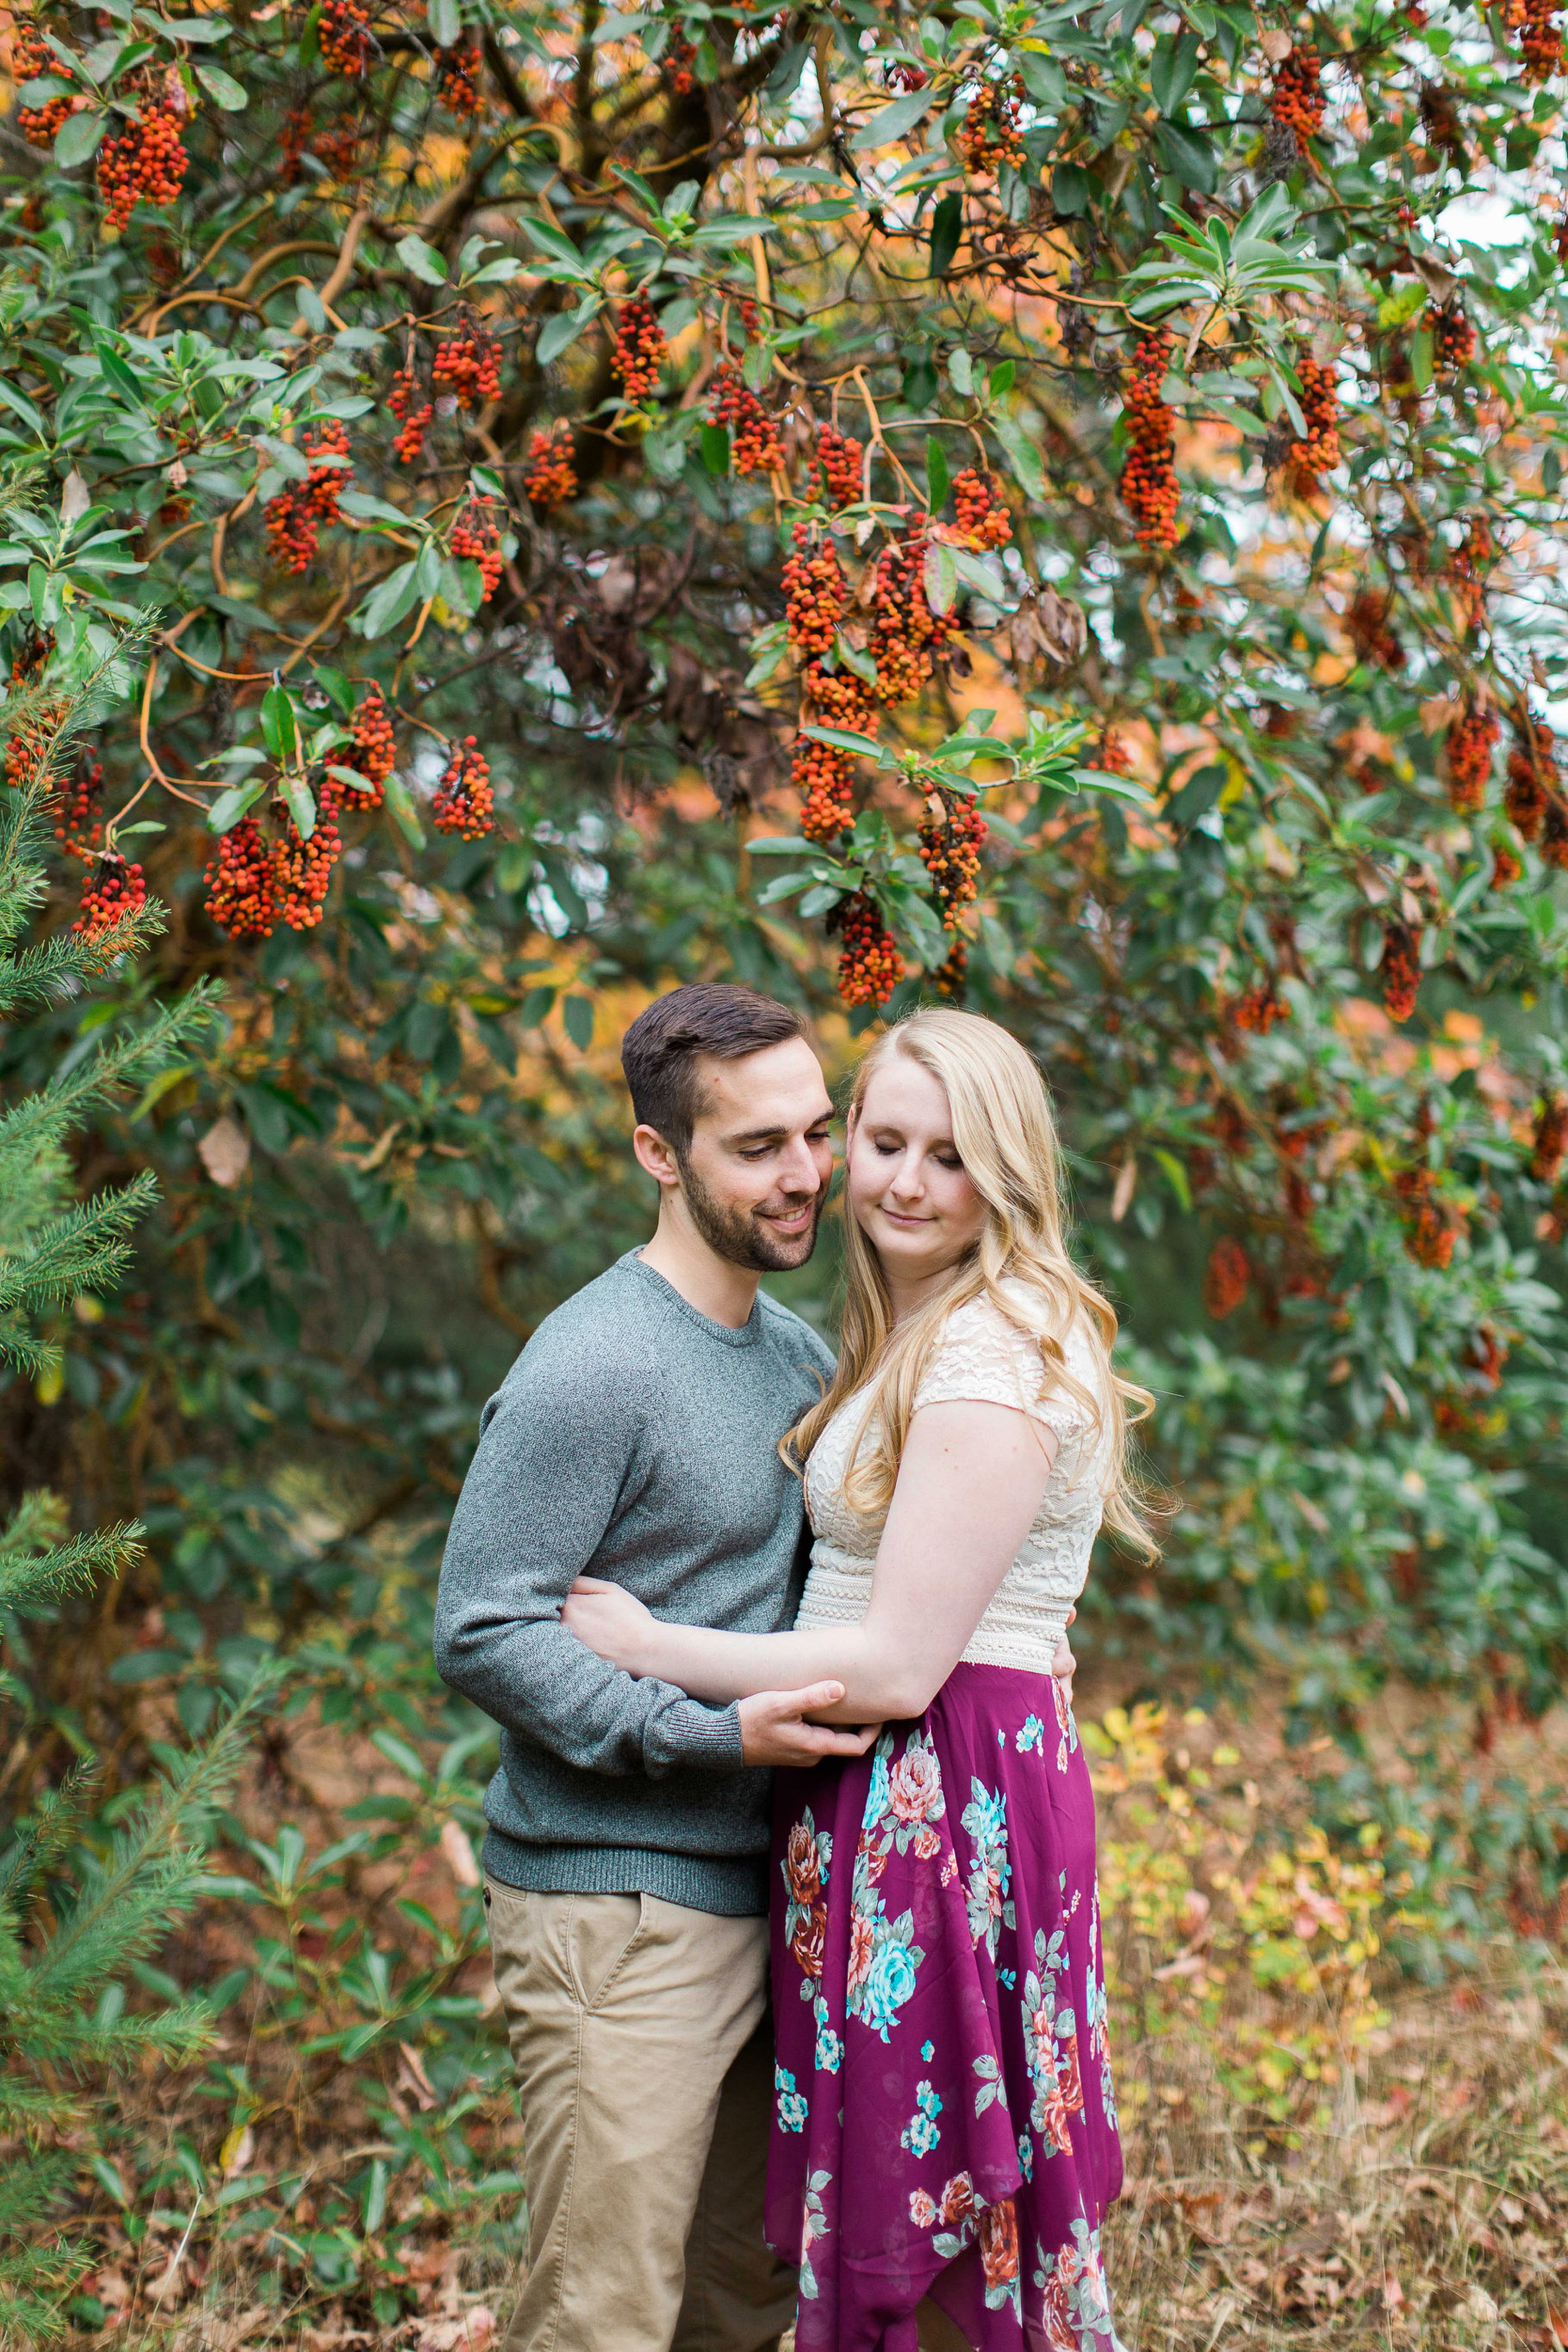 46-Romantic-Anniversary-Portraits-Discovery-Park-Seattle-Wedding-Photographer